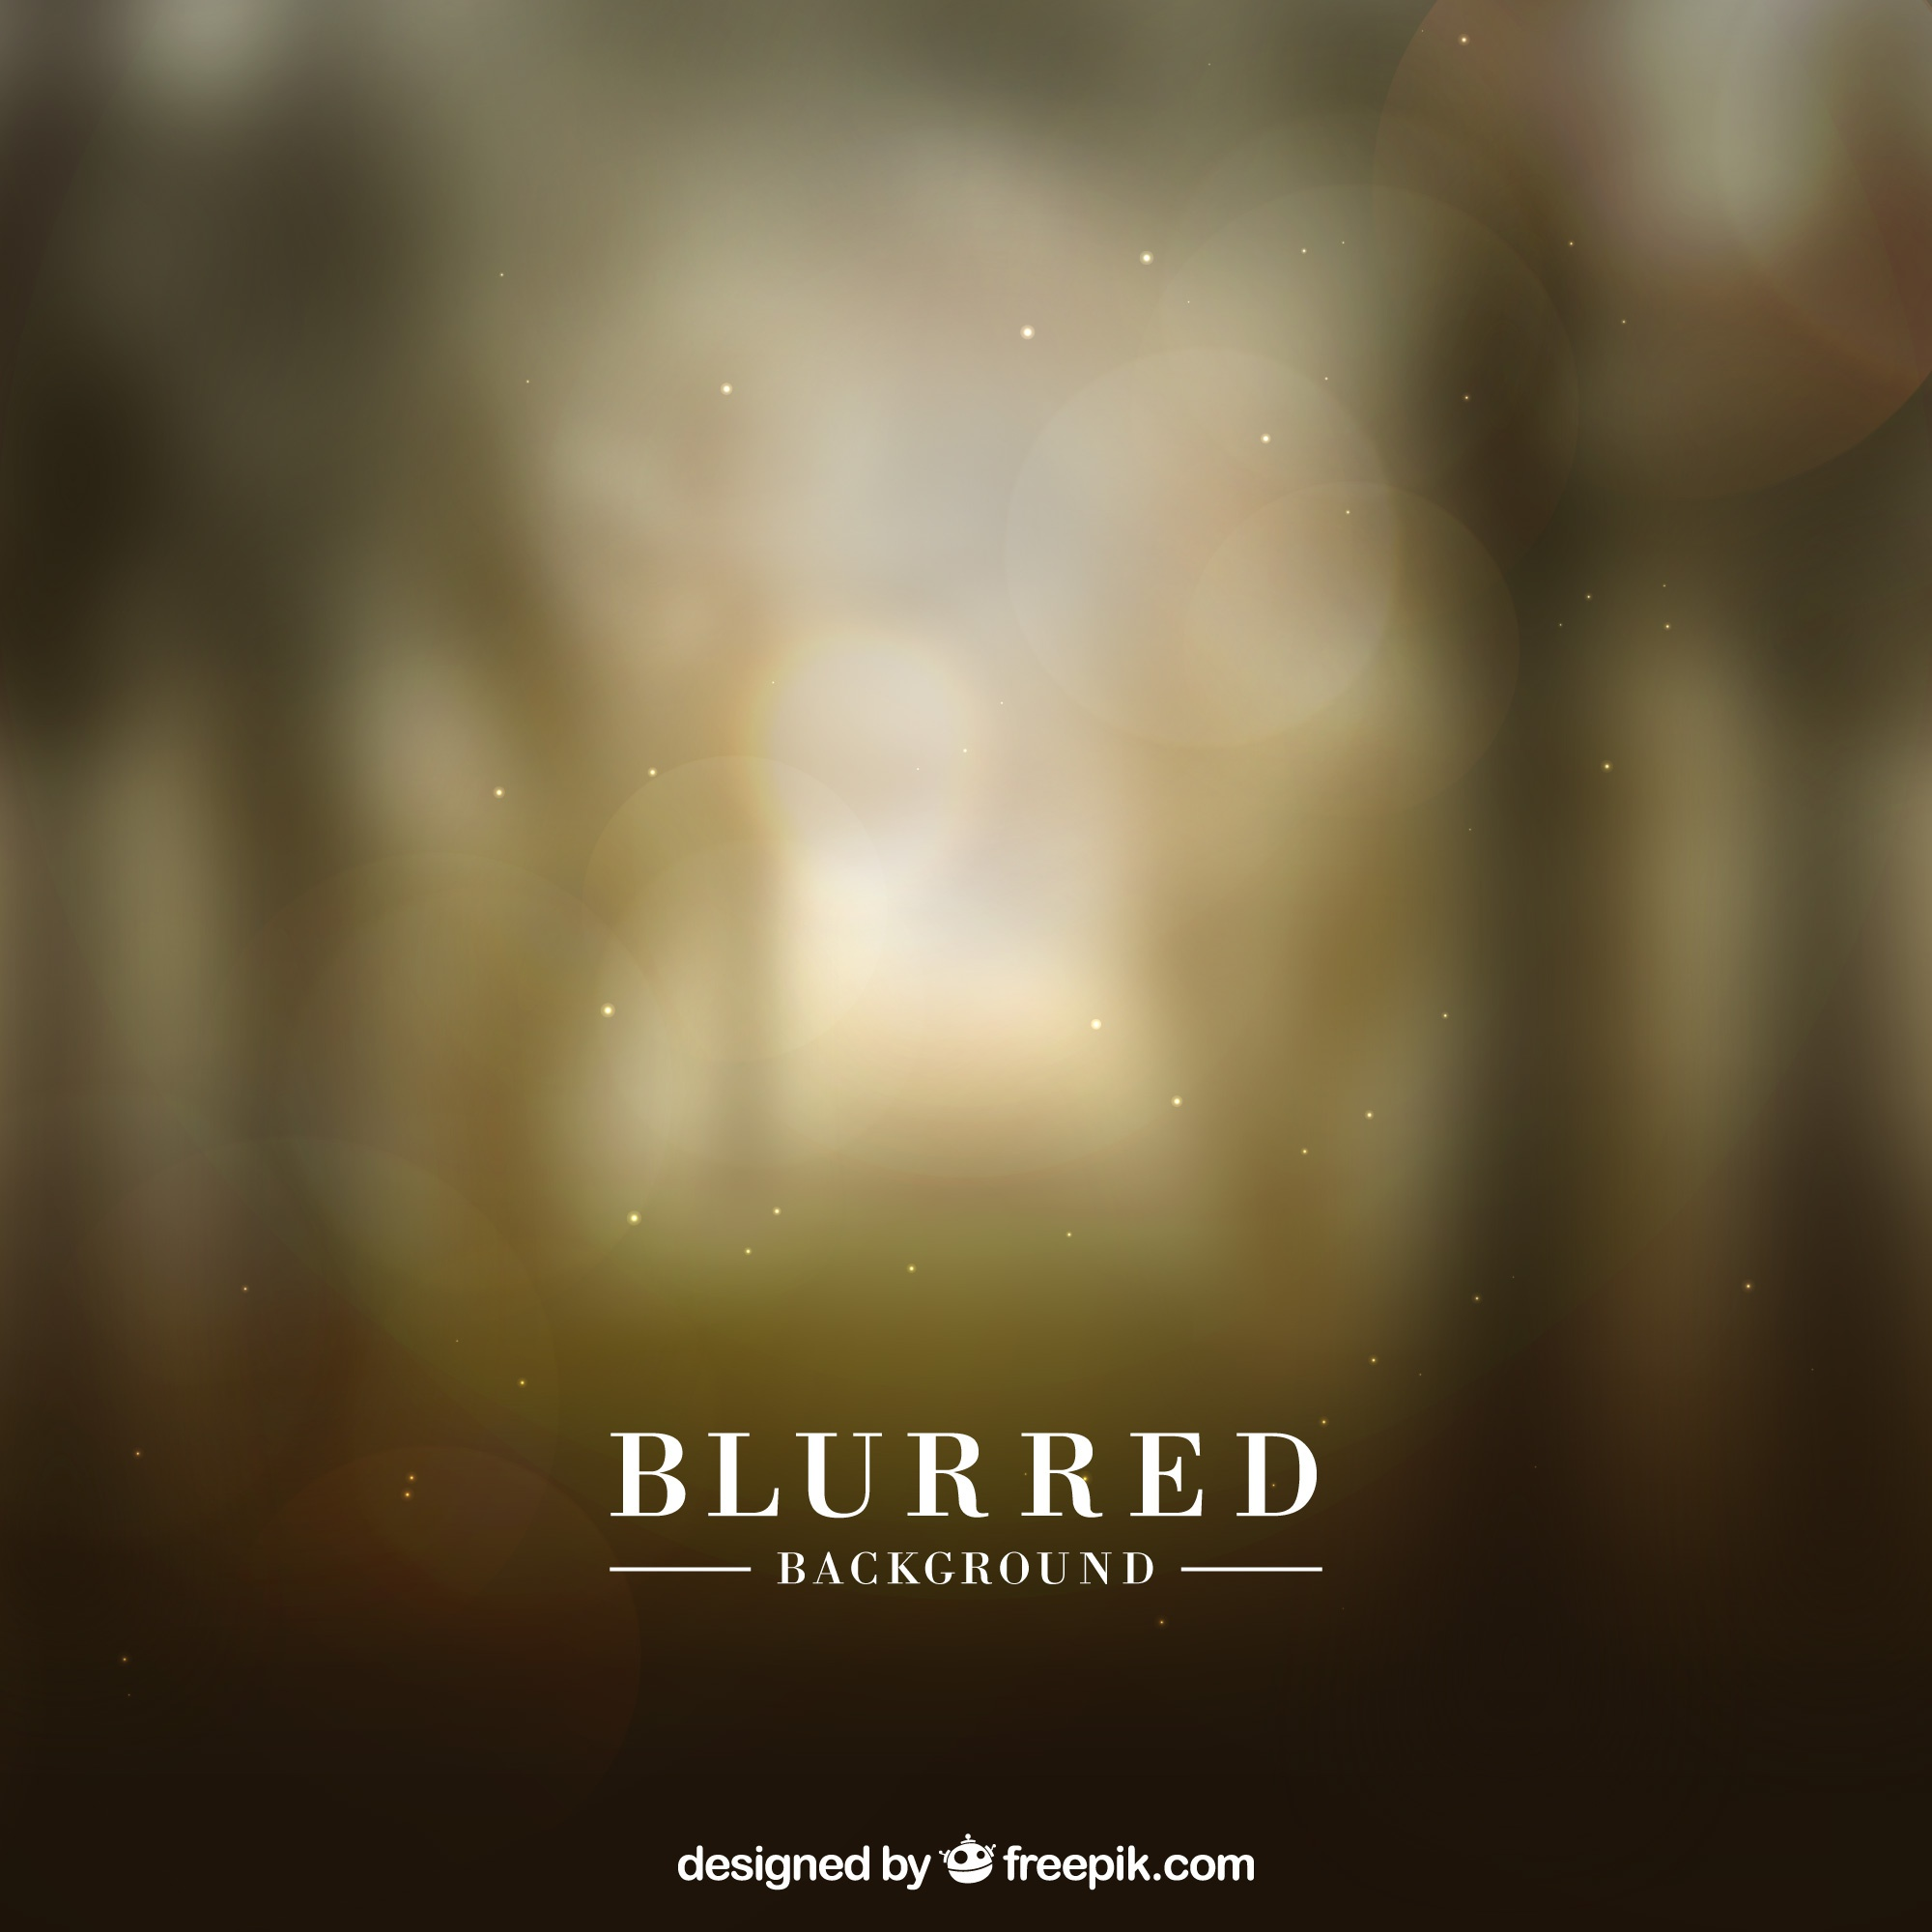 Blurred background with light